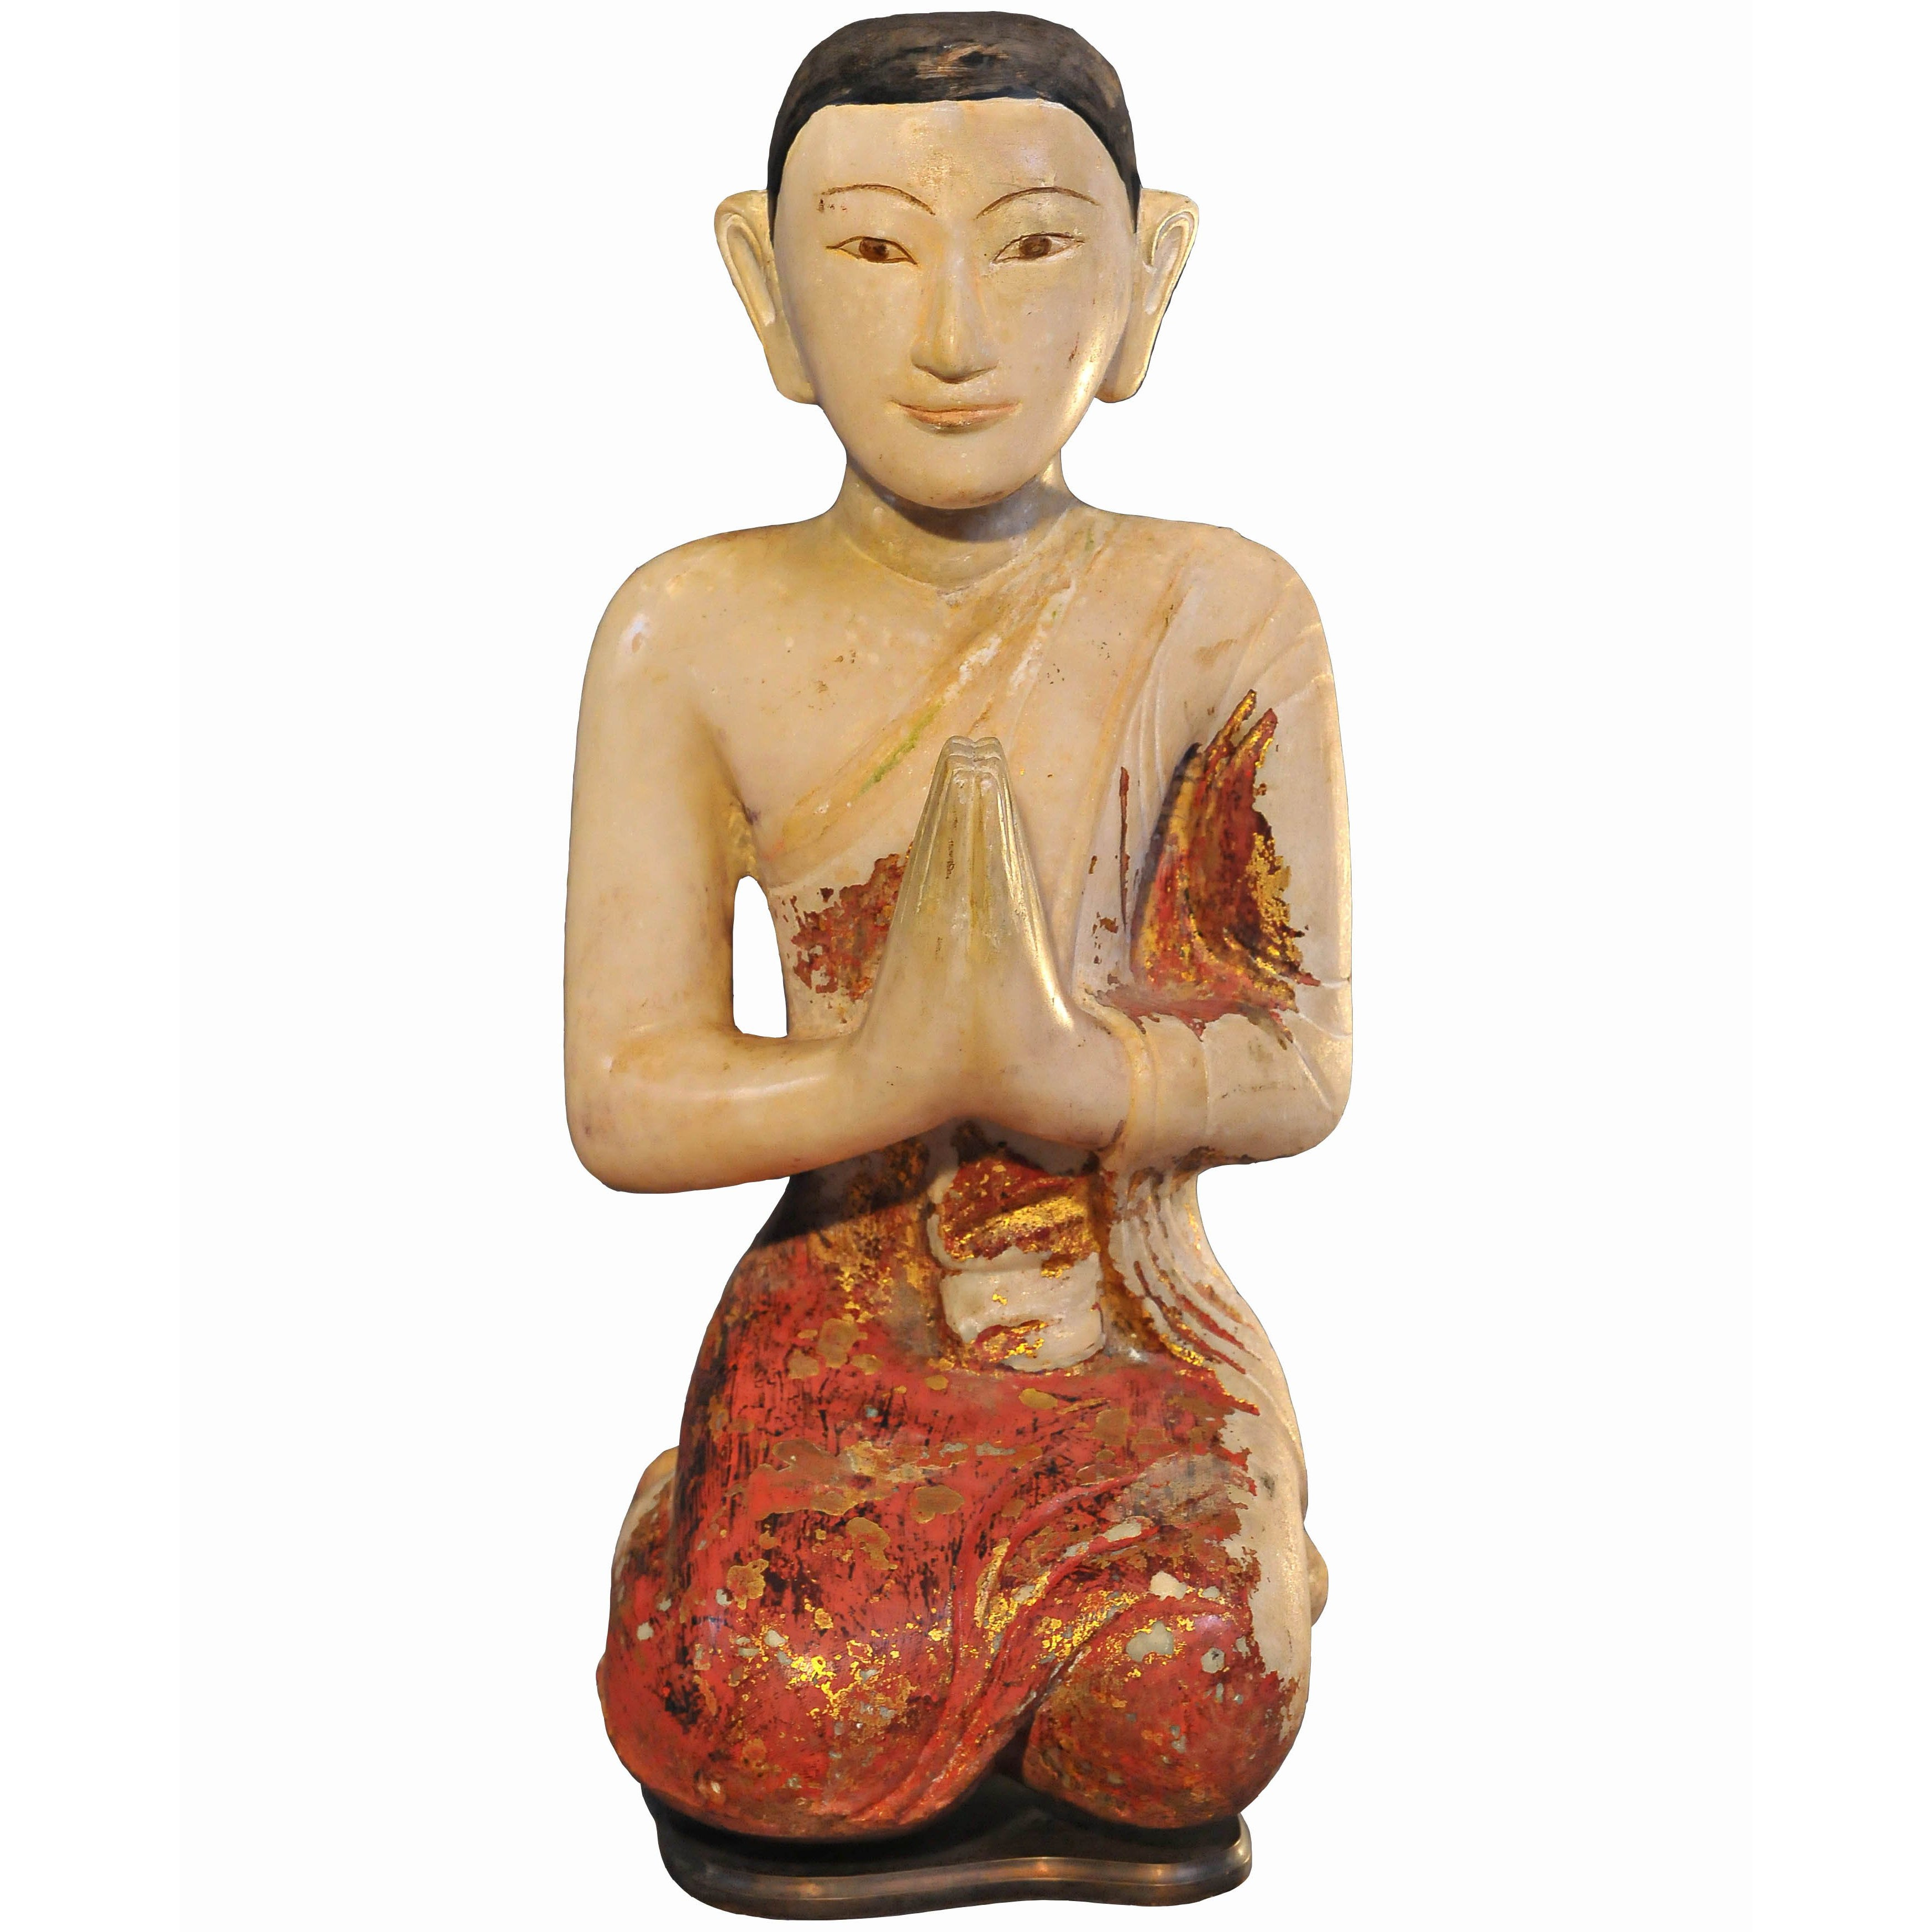 19th Century Alabaster with Lacquer Monk in Anjali Mudra, Mandalay, Art of Burma